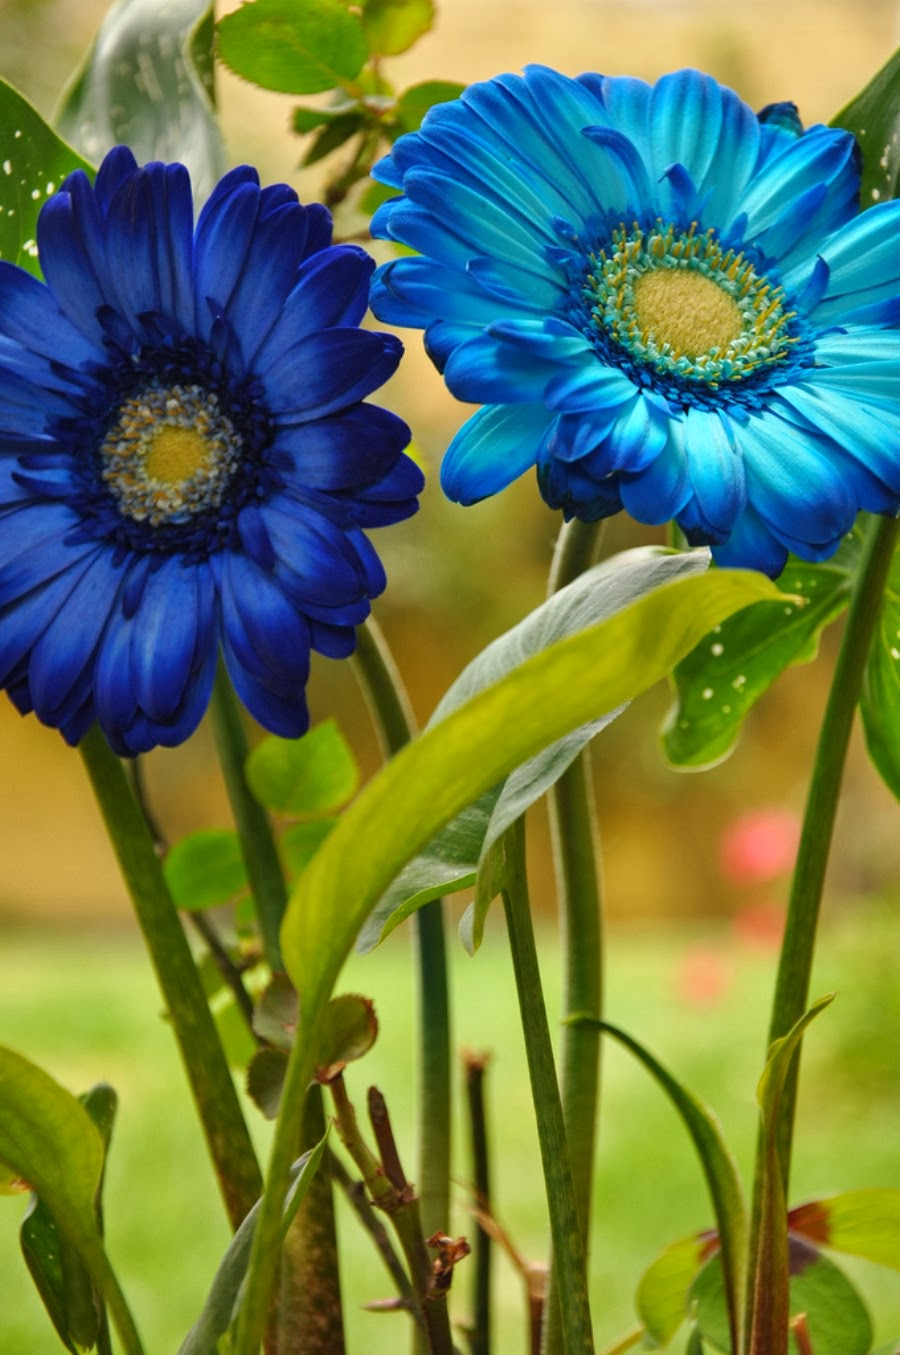 World's Most Beautiful Flowers Wallpapers || HD Wallpapers for Smartphones